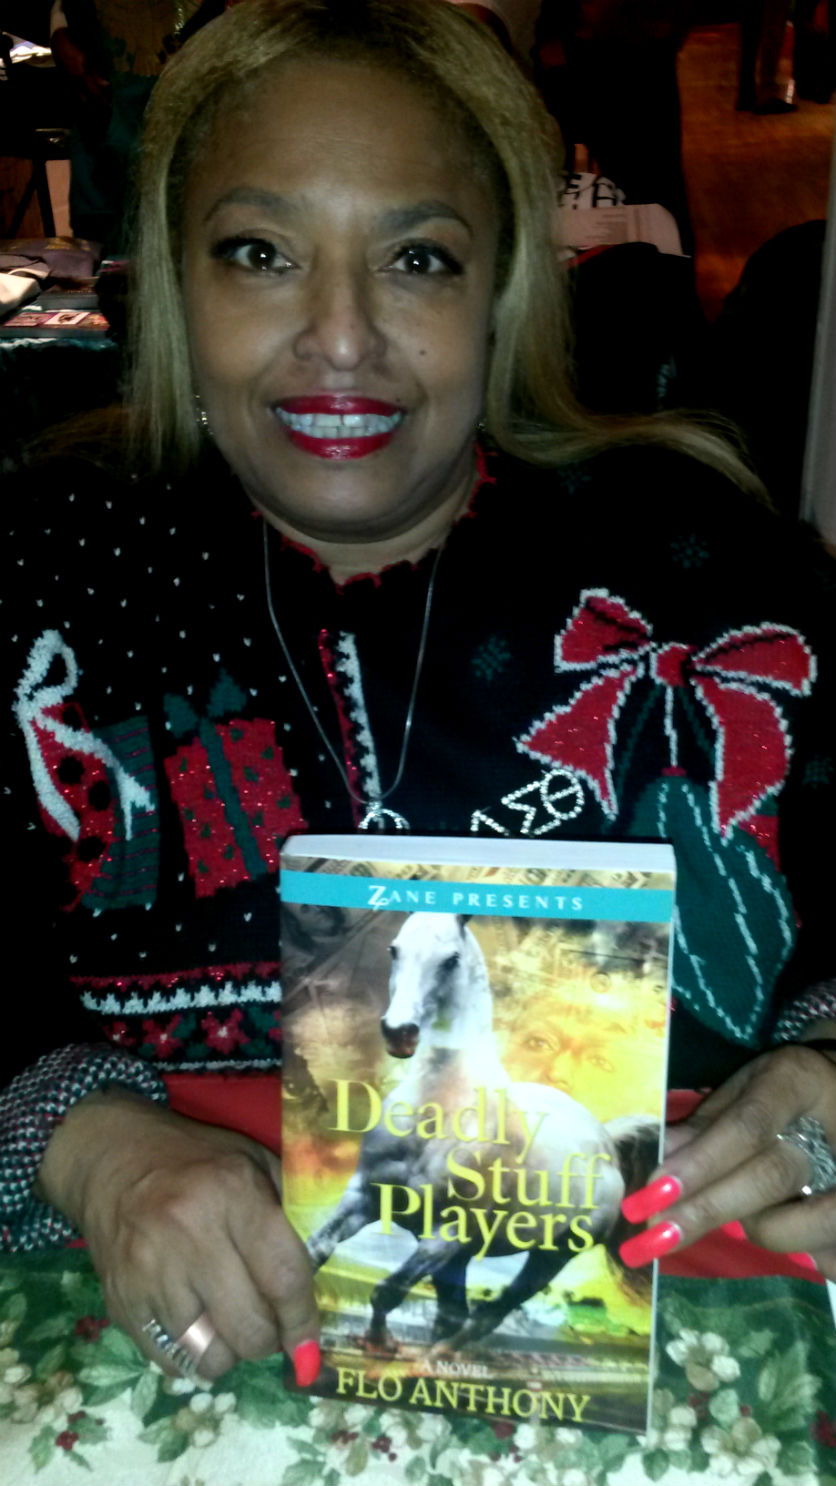 Ms. Flo Anthony of TV1 notoriety here at Black Expo with her second tome Deadly Stuff Players a blac